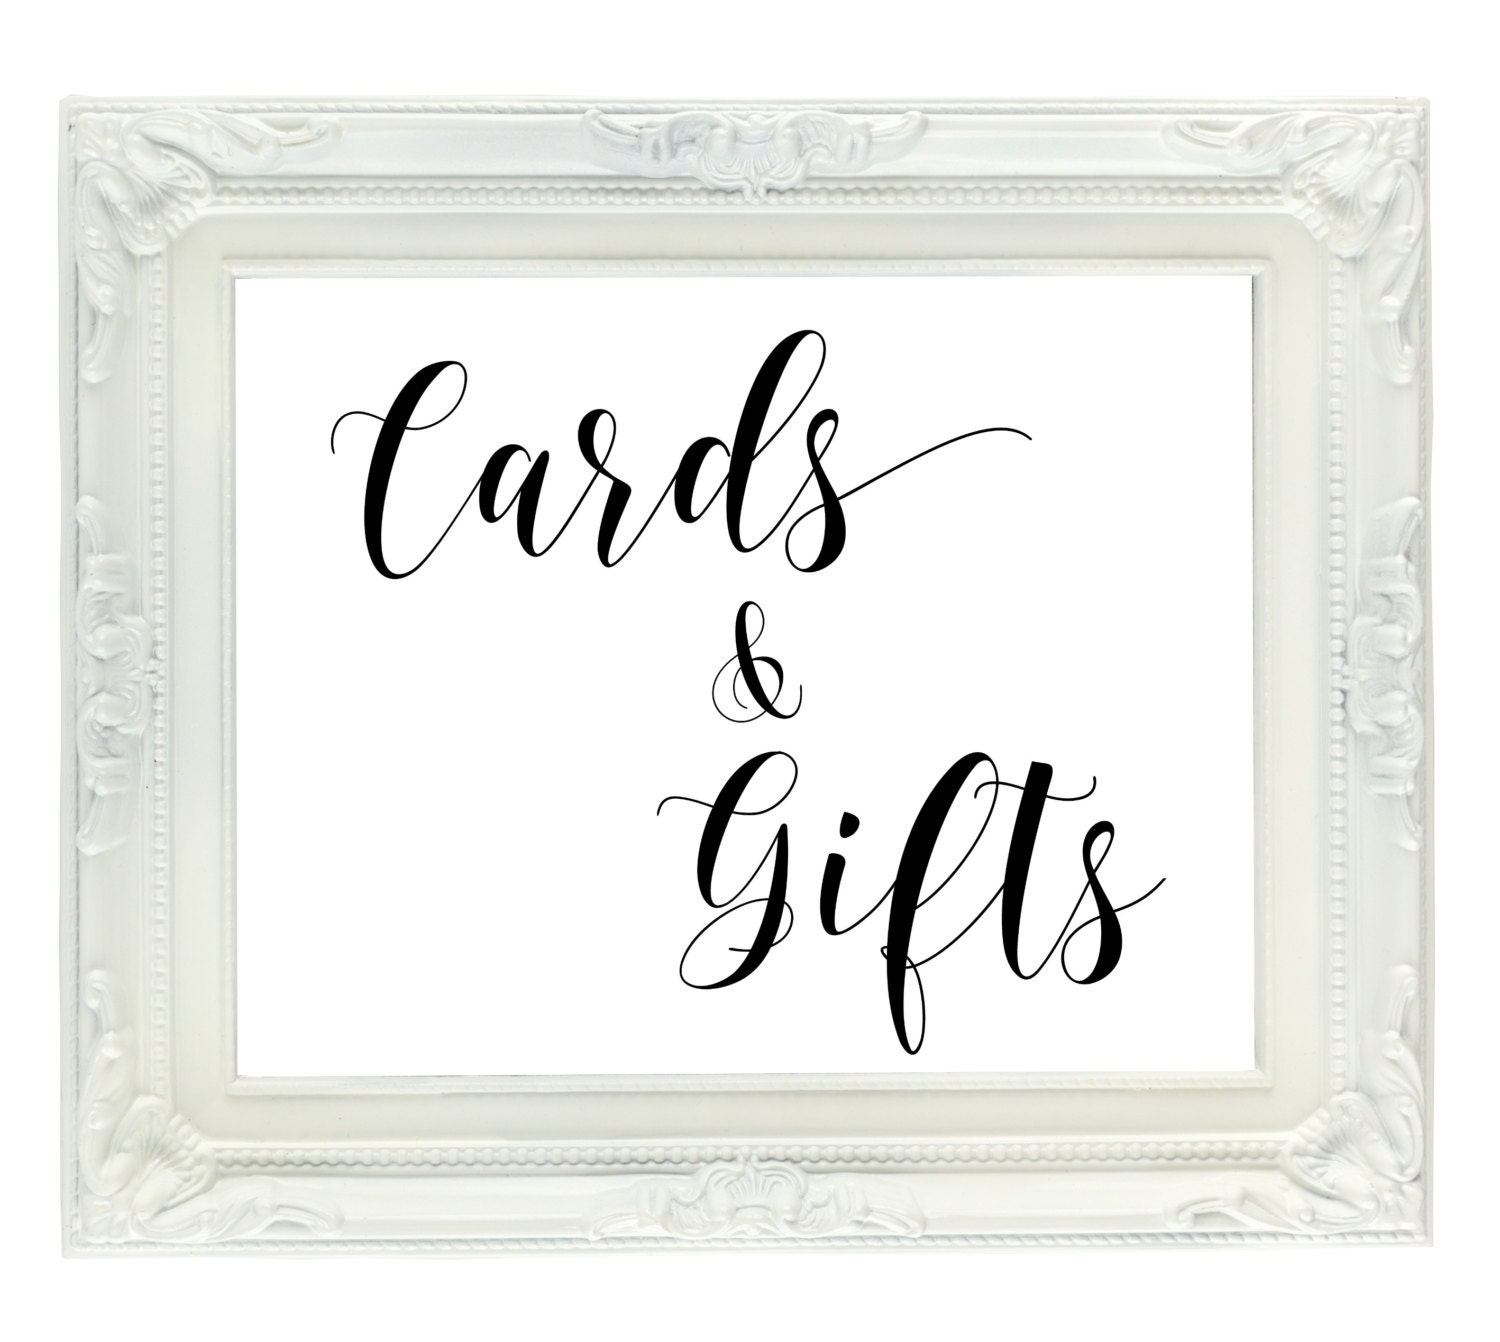 Printable Wedding Gift Card Free : Cards & Gifts Wedding Sign PRINTABLE wedding sign gift table